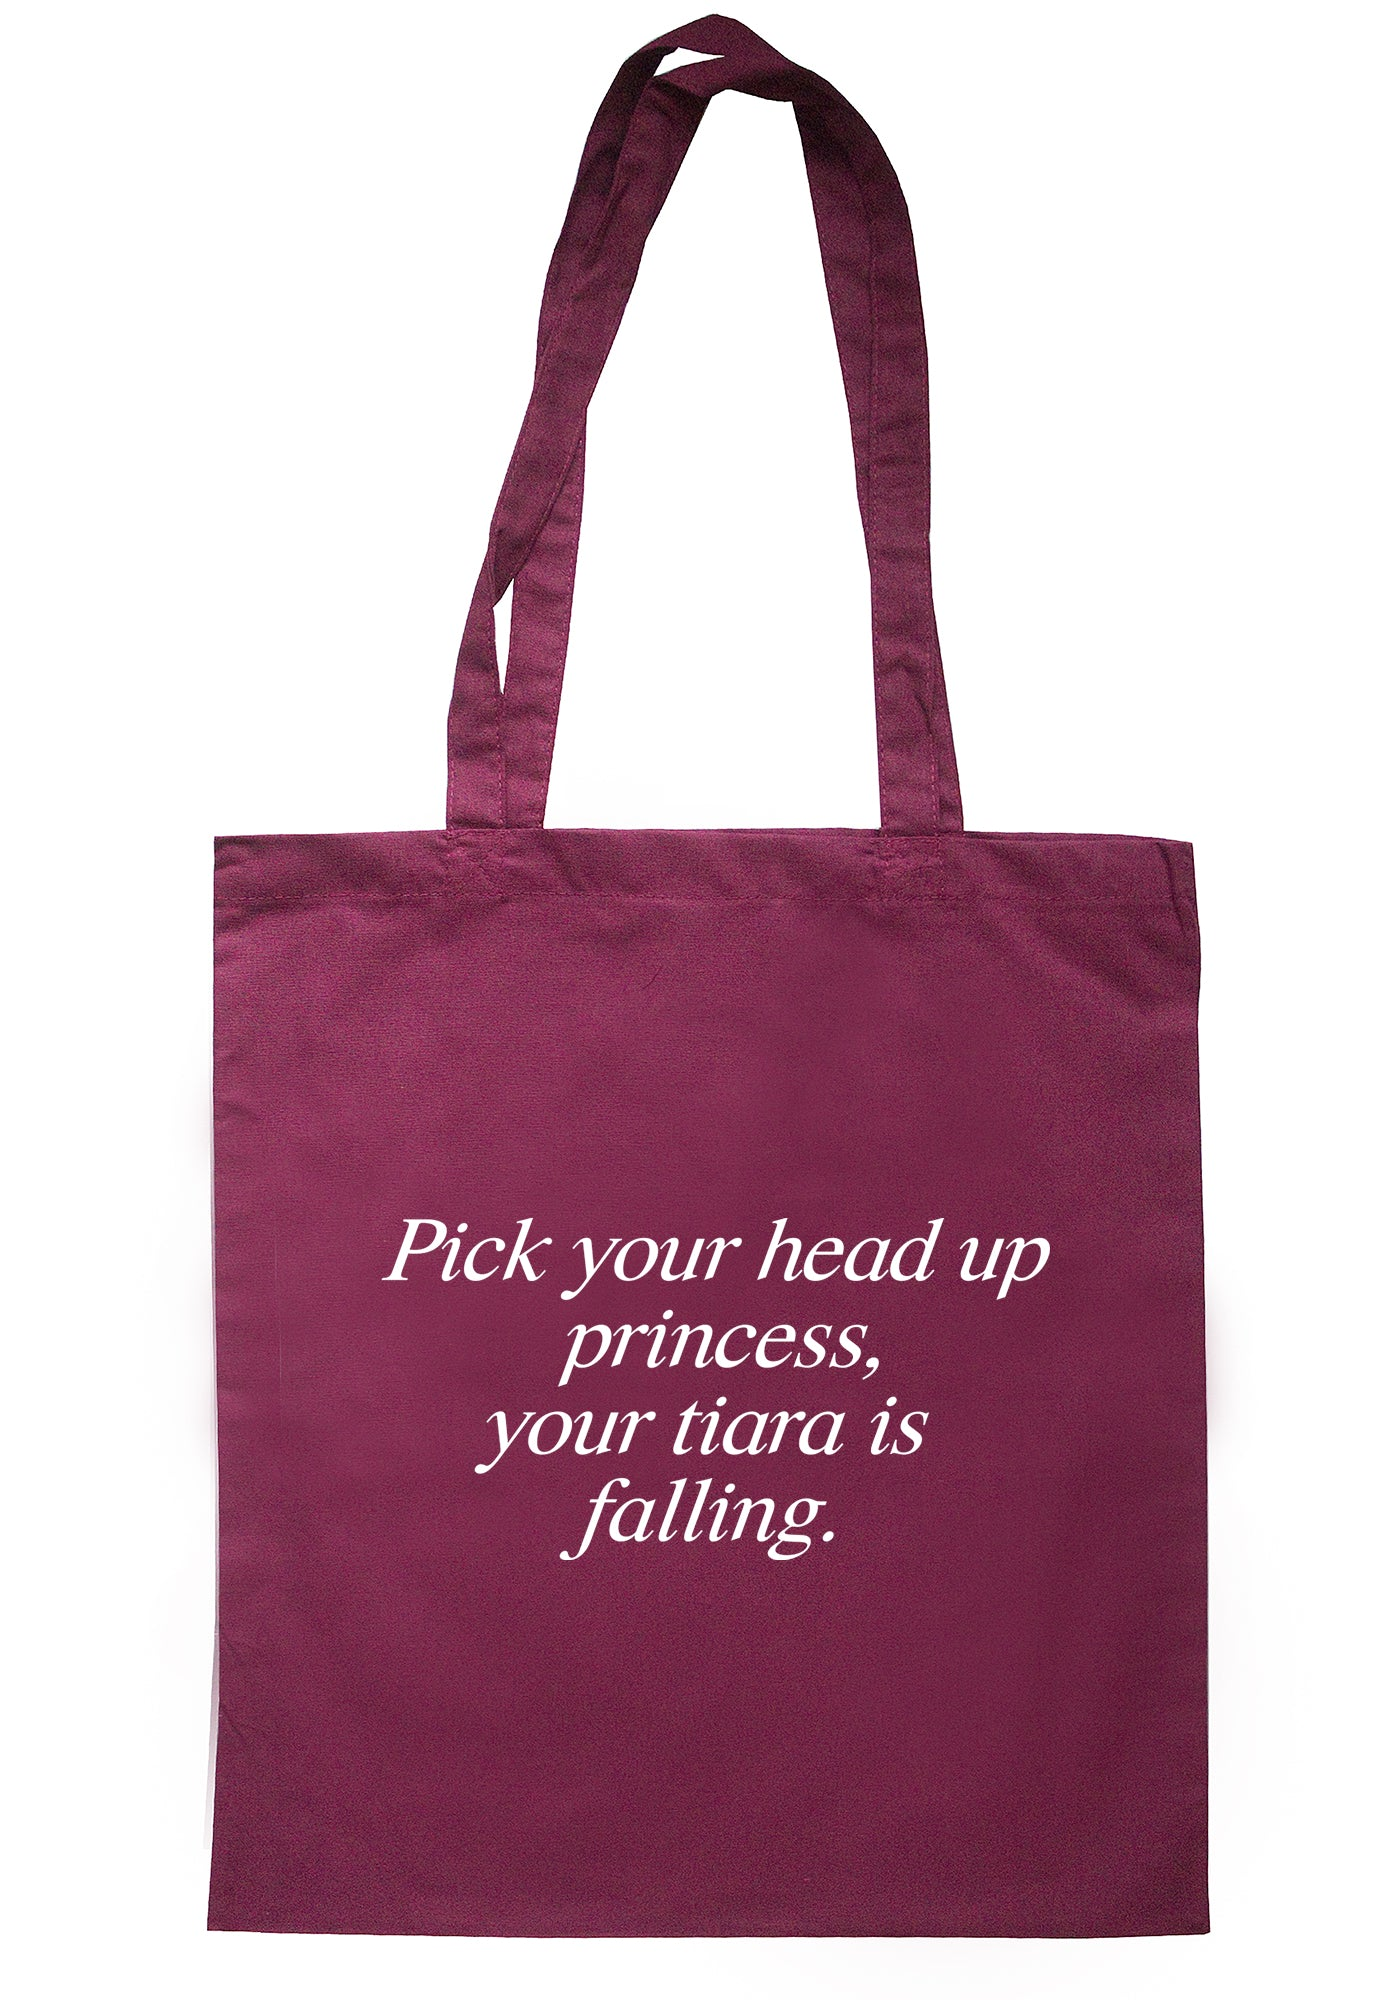 Pick Your Head Up Princess, Your Tiara Is Falling Tote Bag S0909 - Illustrated Identity Ltd.